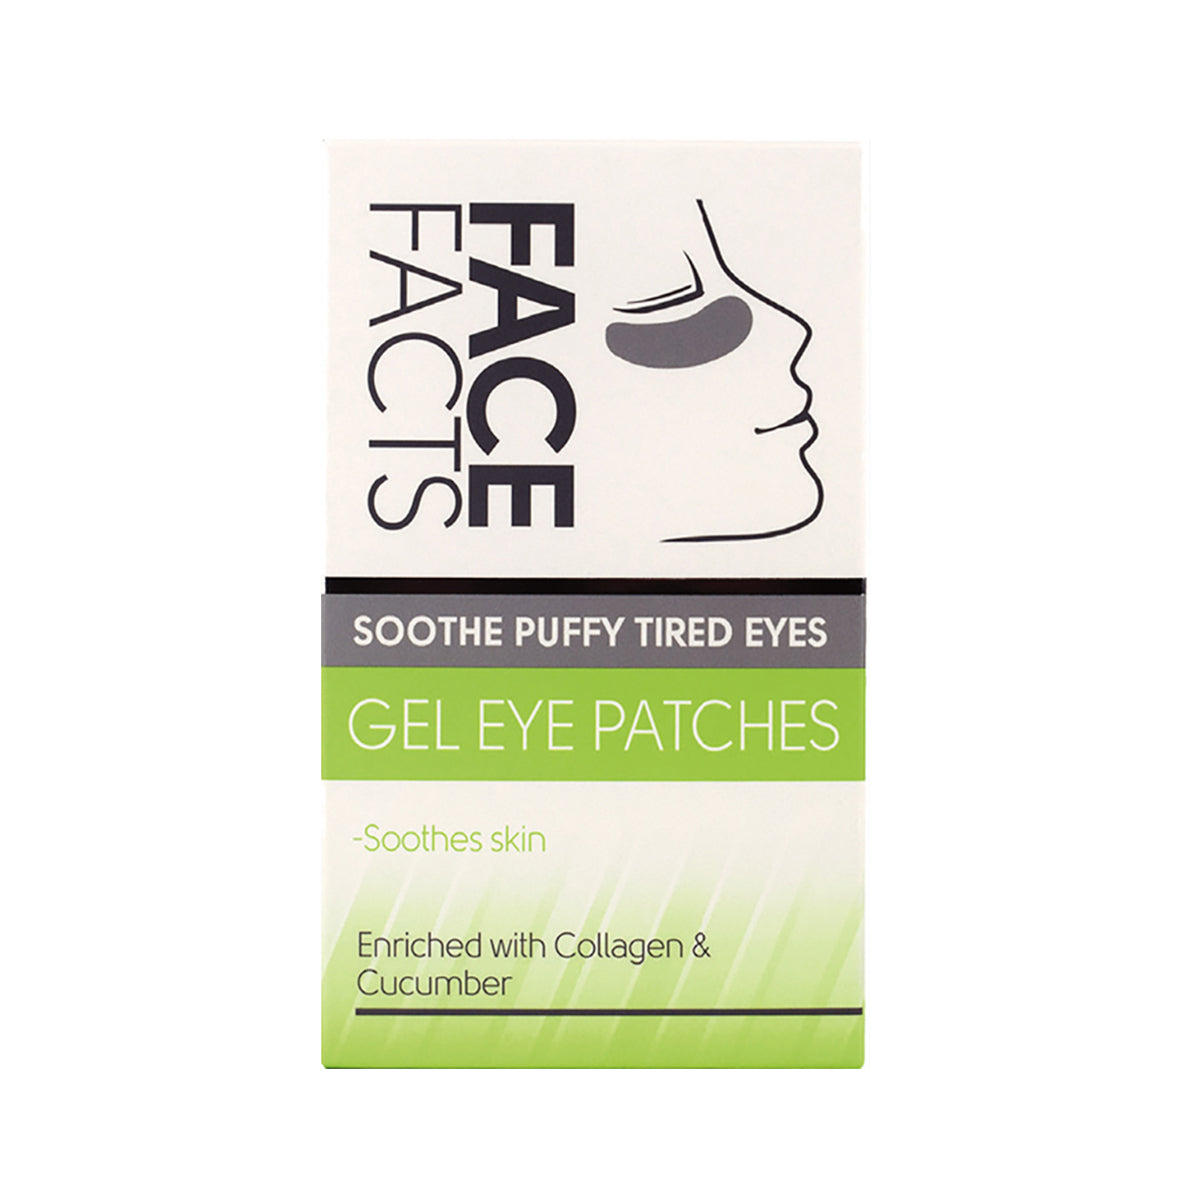 Face Facts Gel Eye Patches - Soothe Puffy Tired Eyes